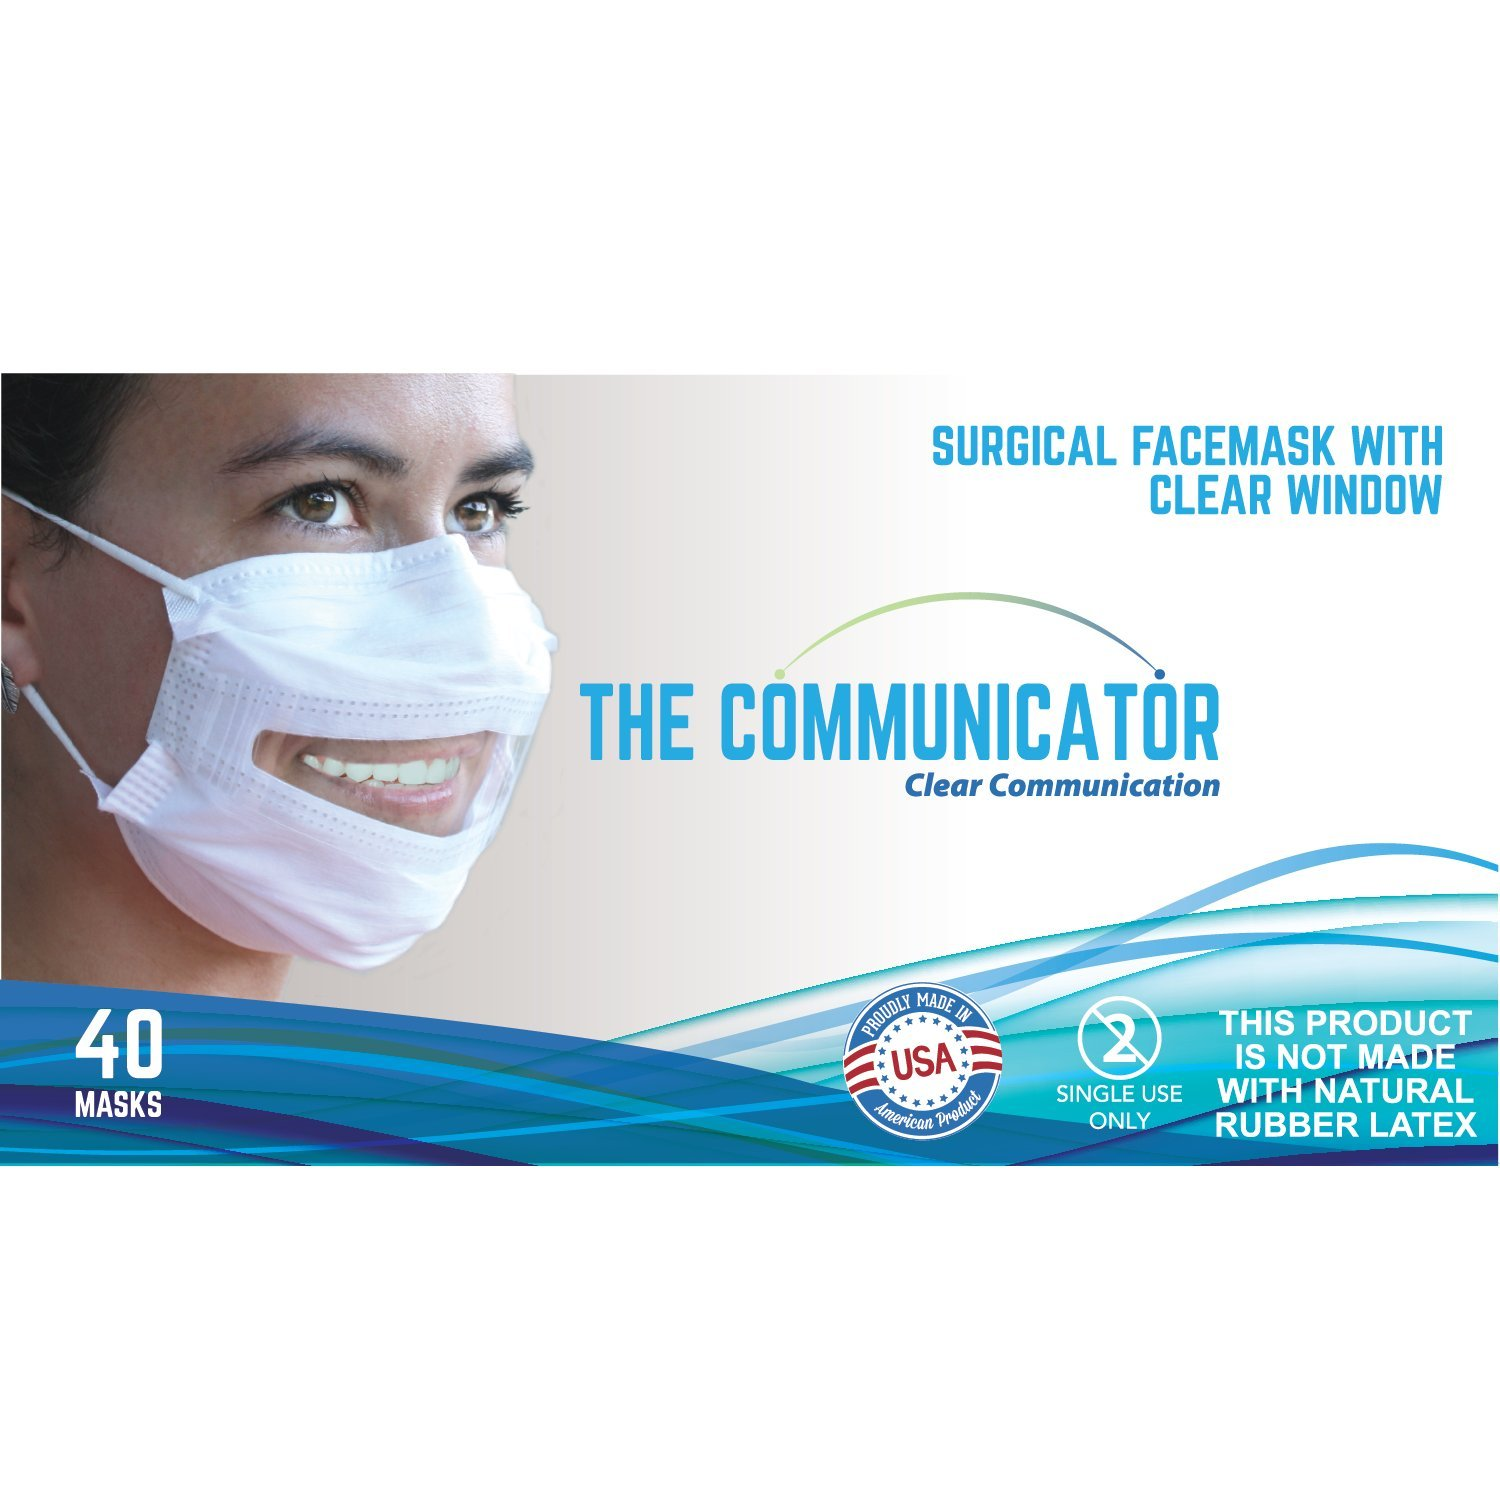 Clear With Face Mask Amazon Surgical Window com Communicator